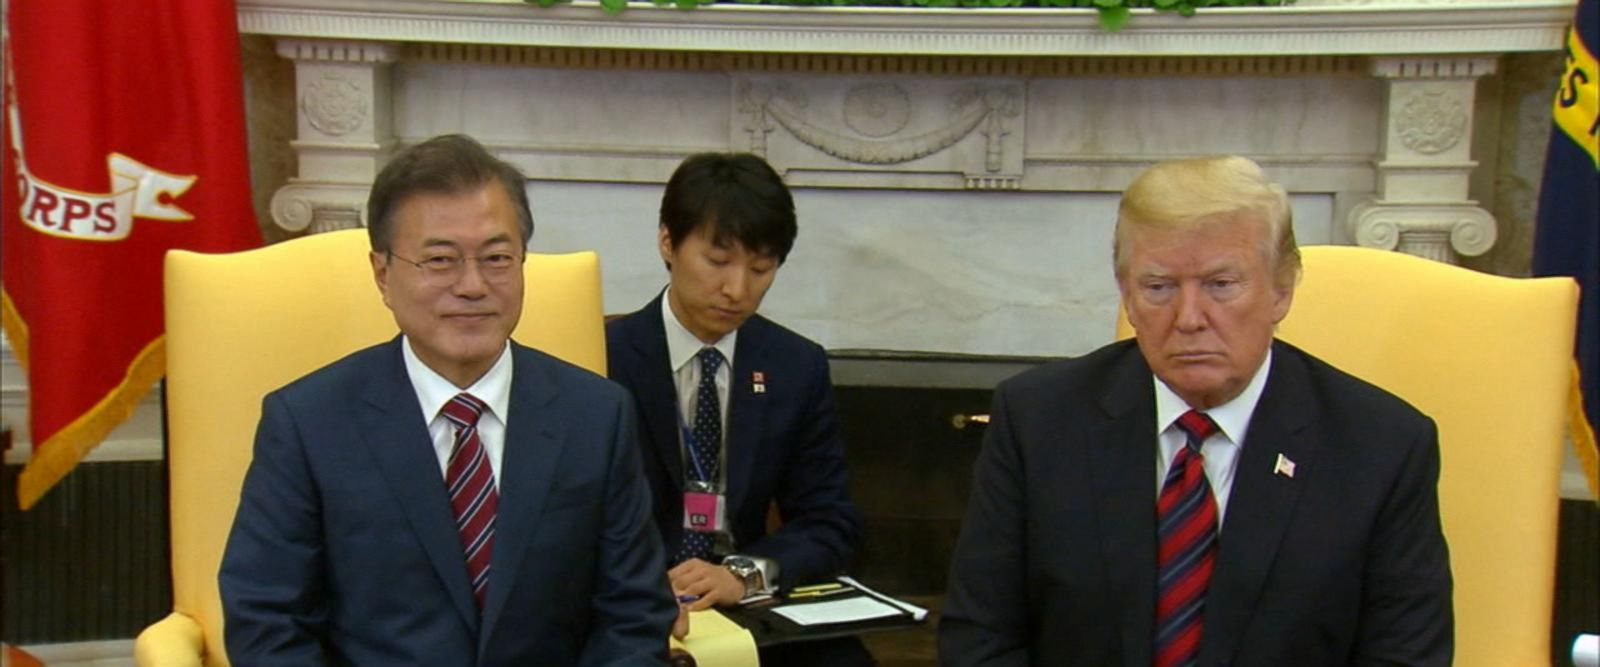 VIDEO: Trump summit with North Korea in jeopardy